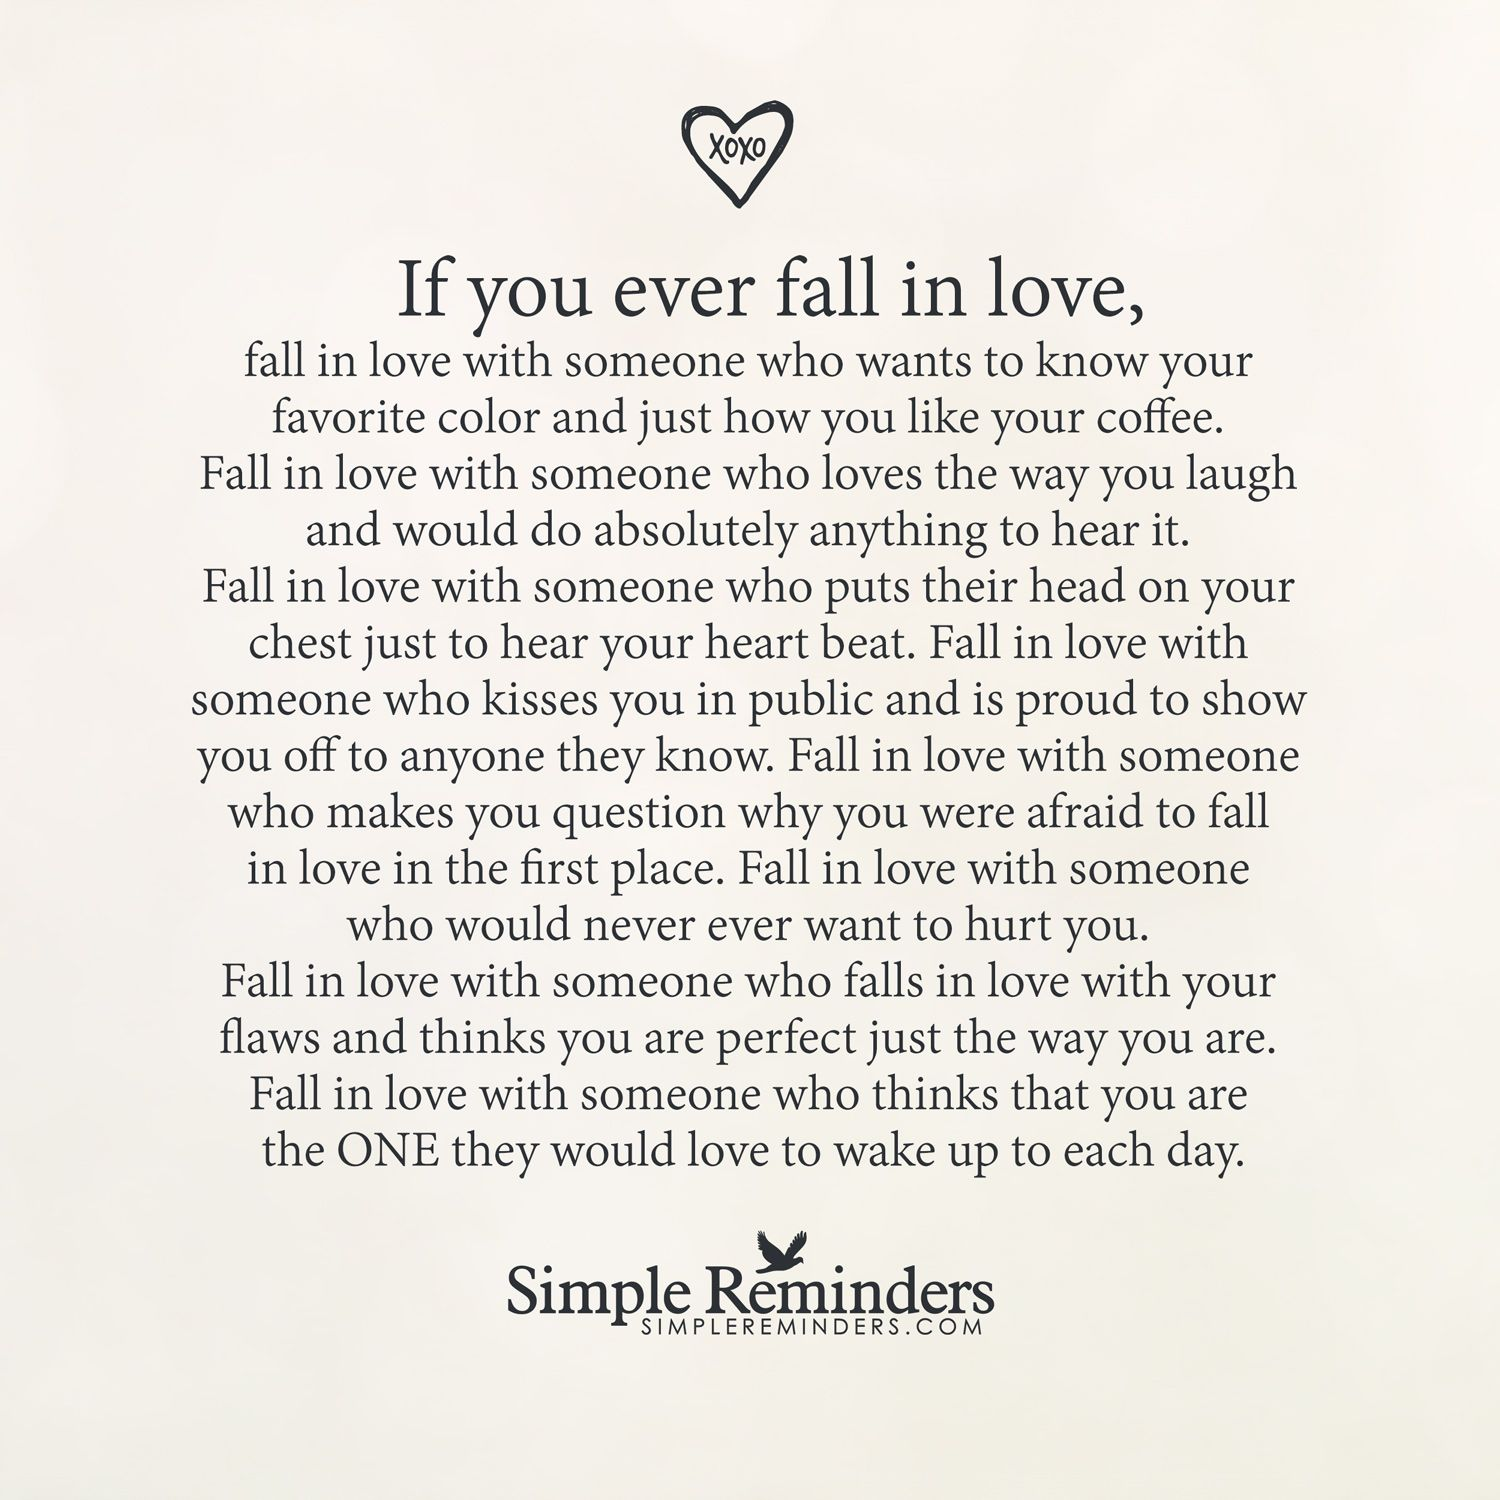 How do you know if you are falling in love